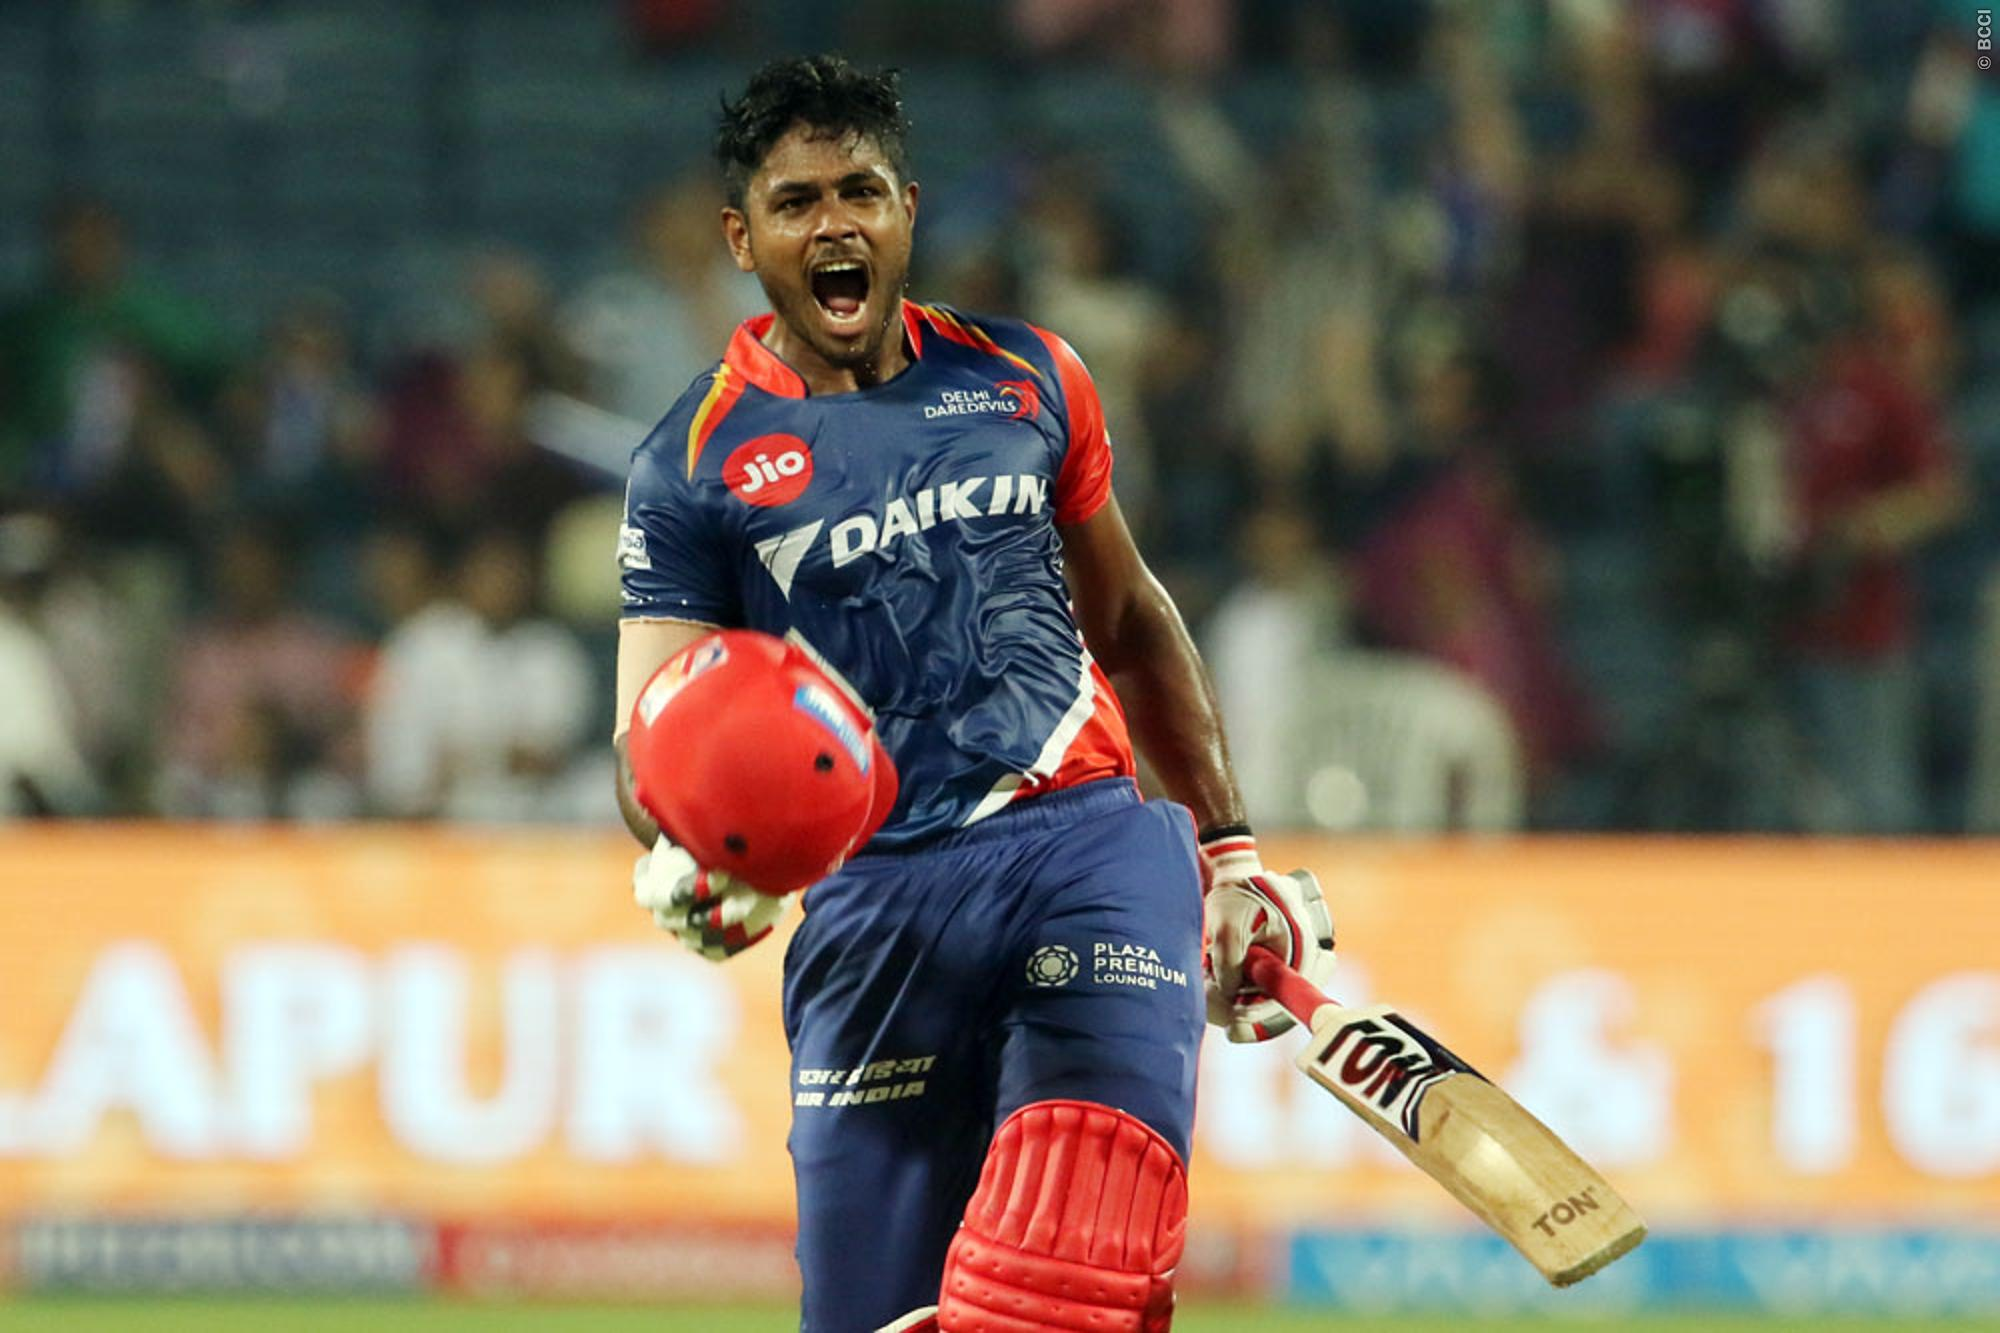 IPL 2017 Result: Sanju Samson Powers Delhi to Thumping Win